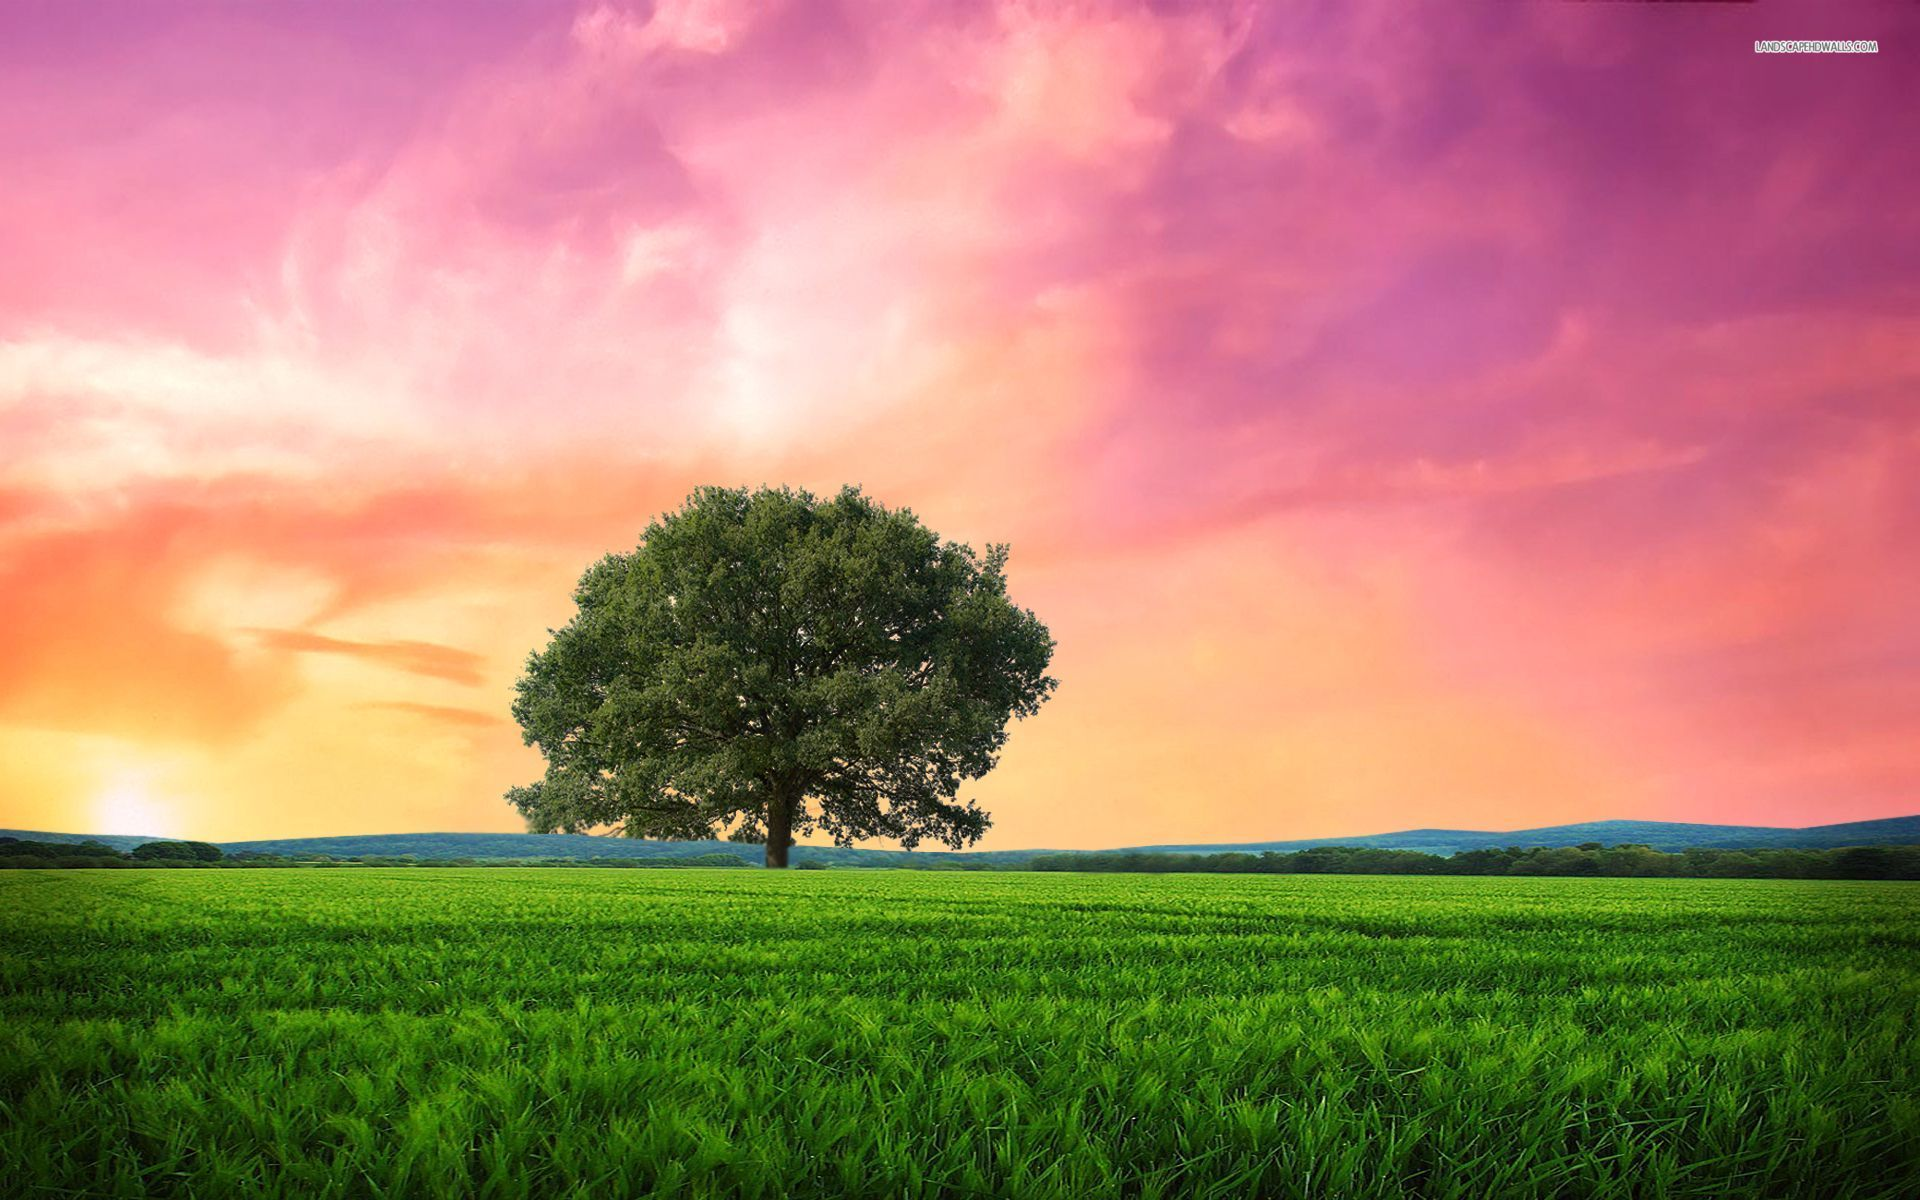 Frozen Animated Wallpaper Pink Sunrise Tree Grass Field Wallpapers Pink Sunrise